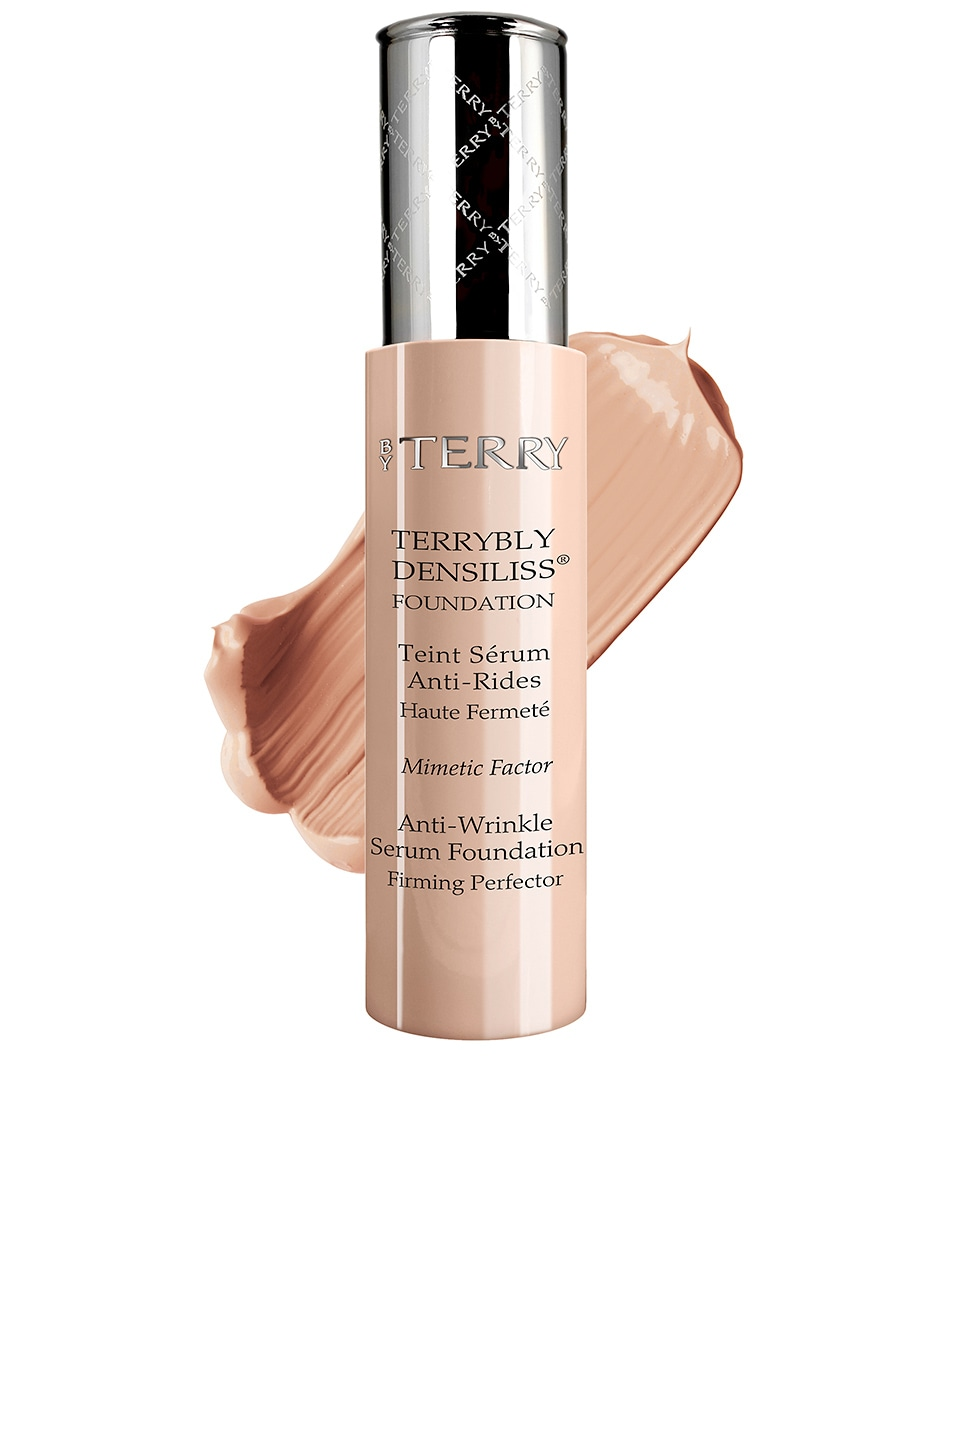 By Terry Terrybly Densiliss Serum Foundation in Golden Beige